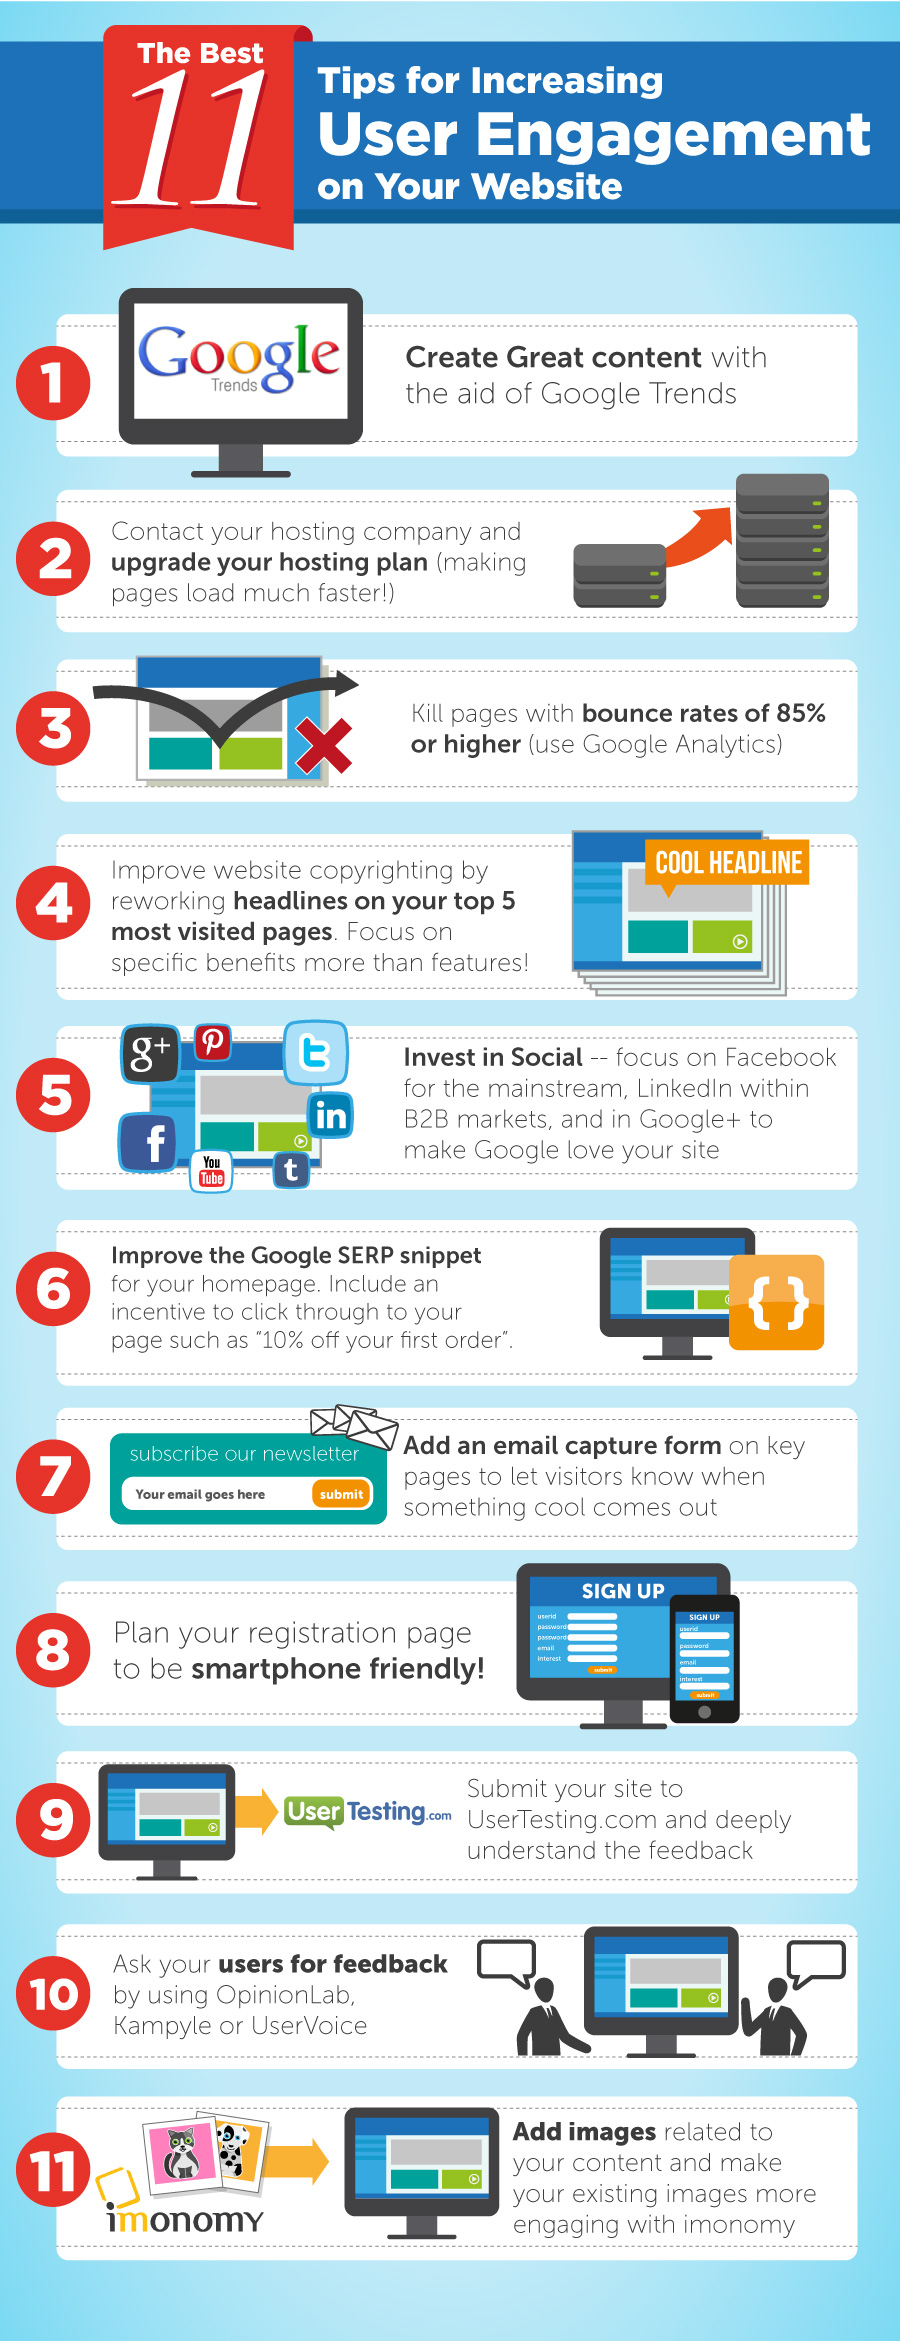 11 Tips For Increasing User Engagement On Your Website - Infographic